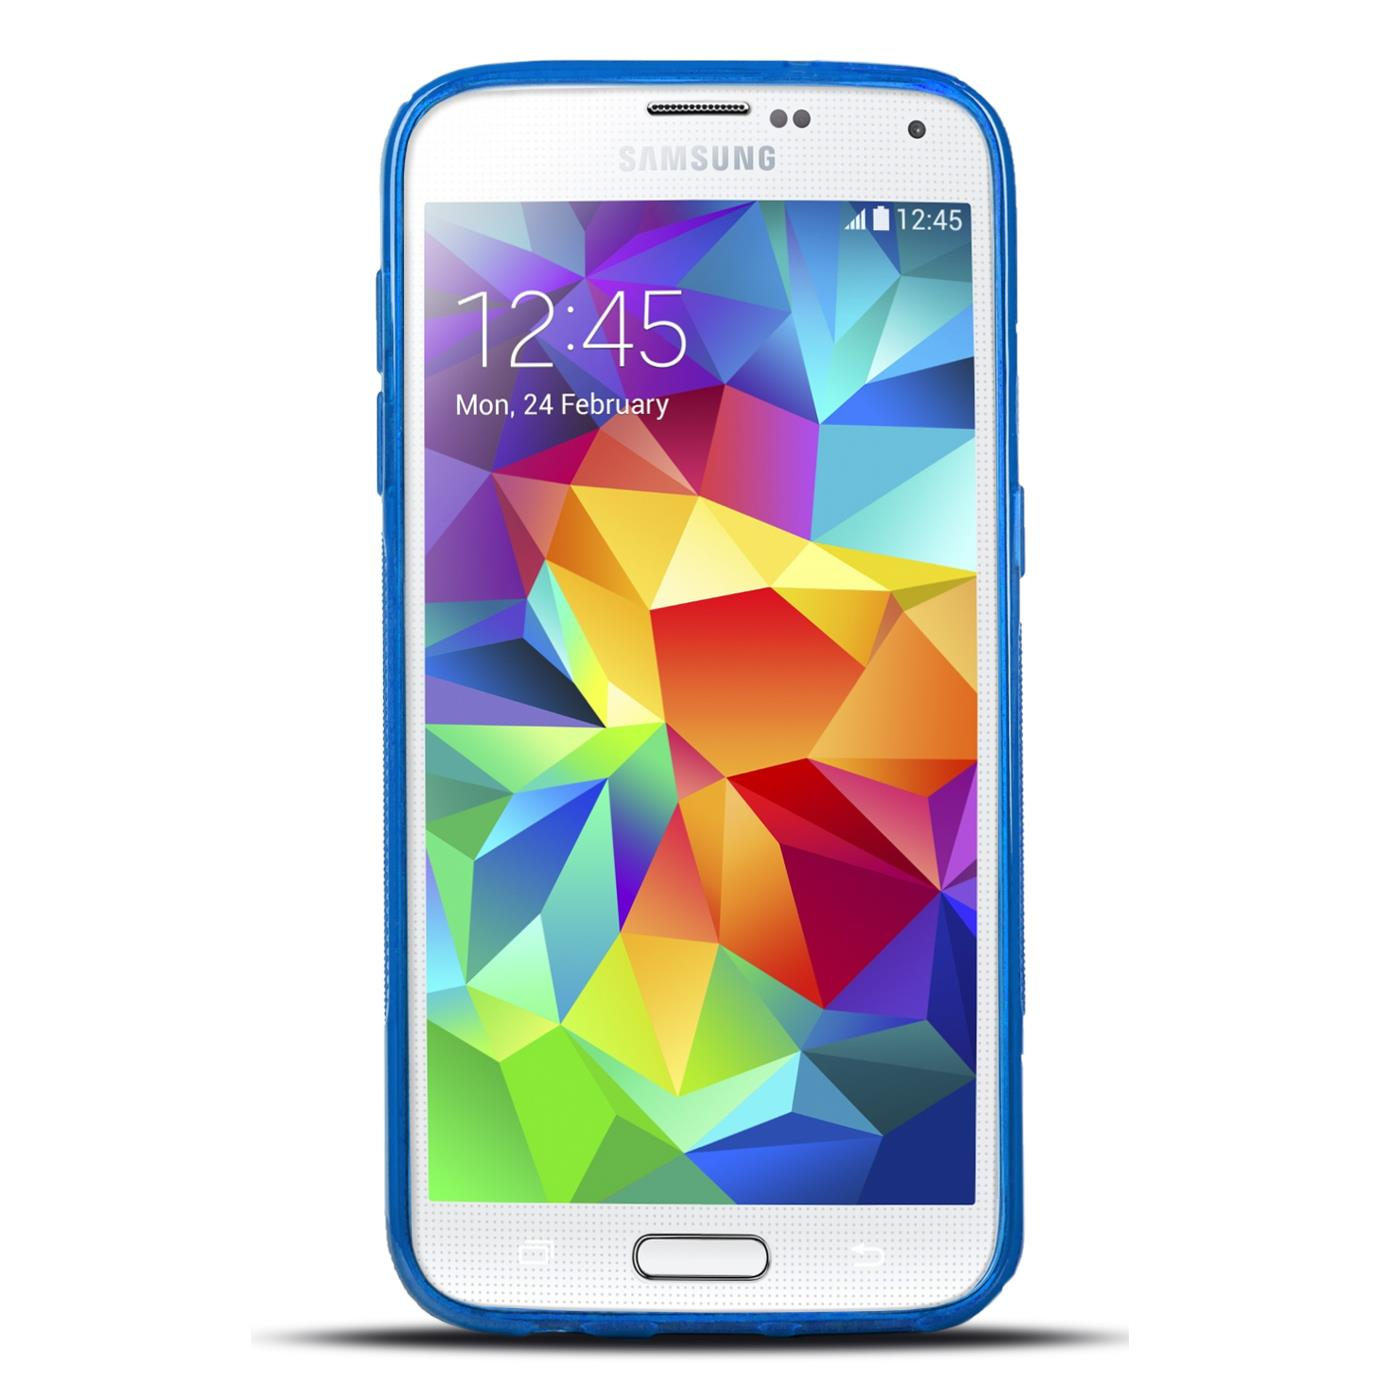 Samsung-Galaxy-s5-Neo-Silikon-Gel-S-Line-Case-Cover-Ultra-Thin-Slim-Back-Bumper Indexbild 9